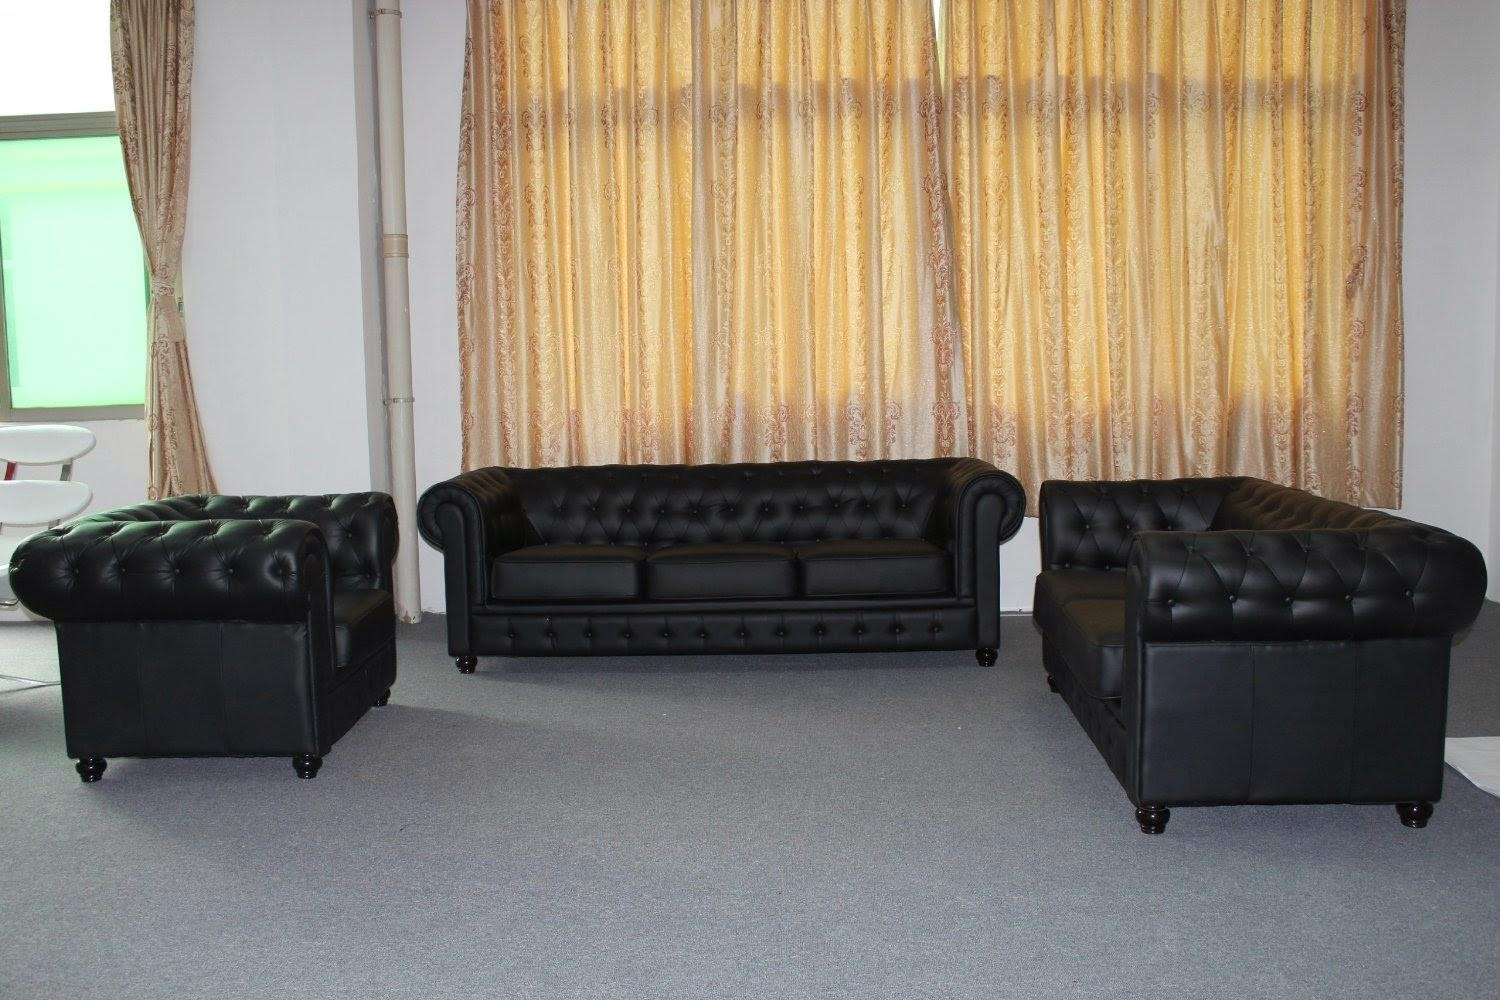 Chesterfield Sofa For Chesterfield Sofas And Chairs (Image 7 of 20)